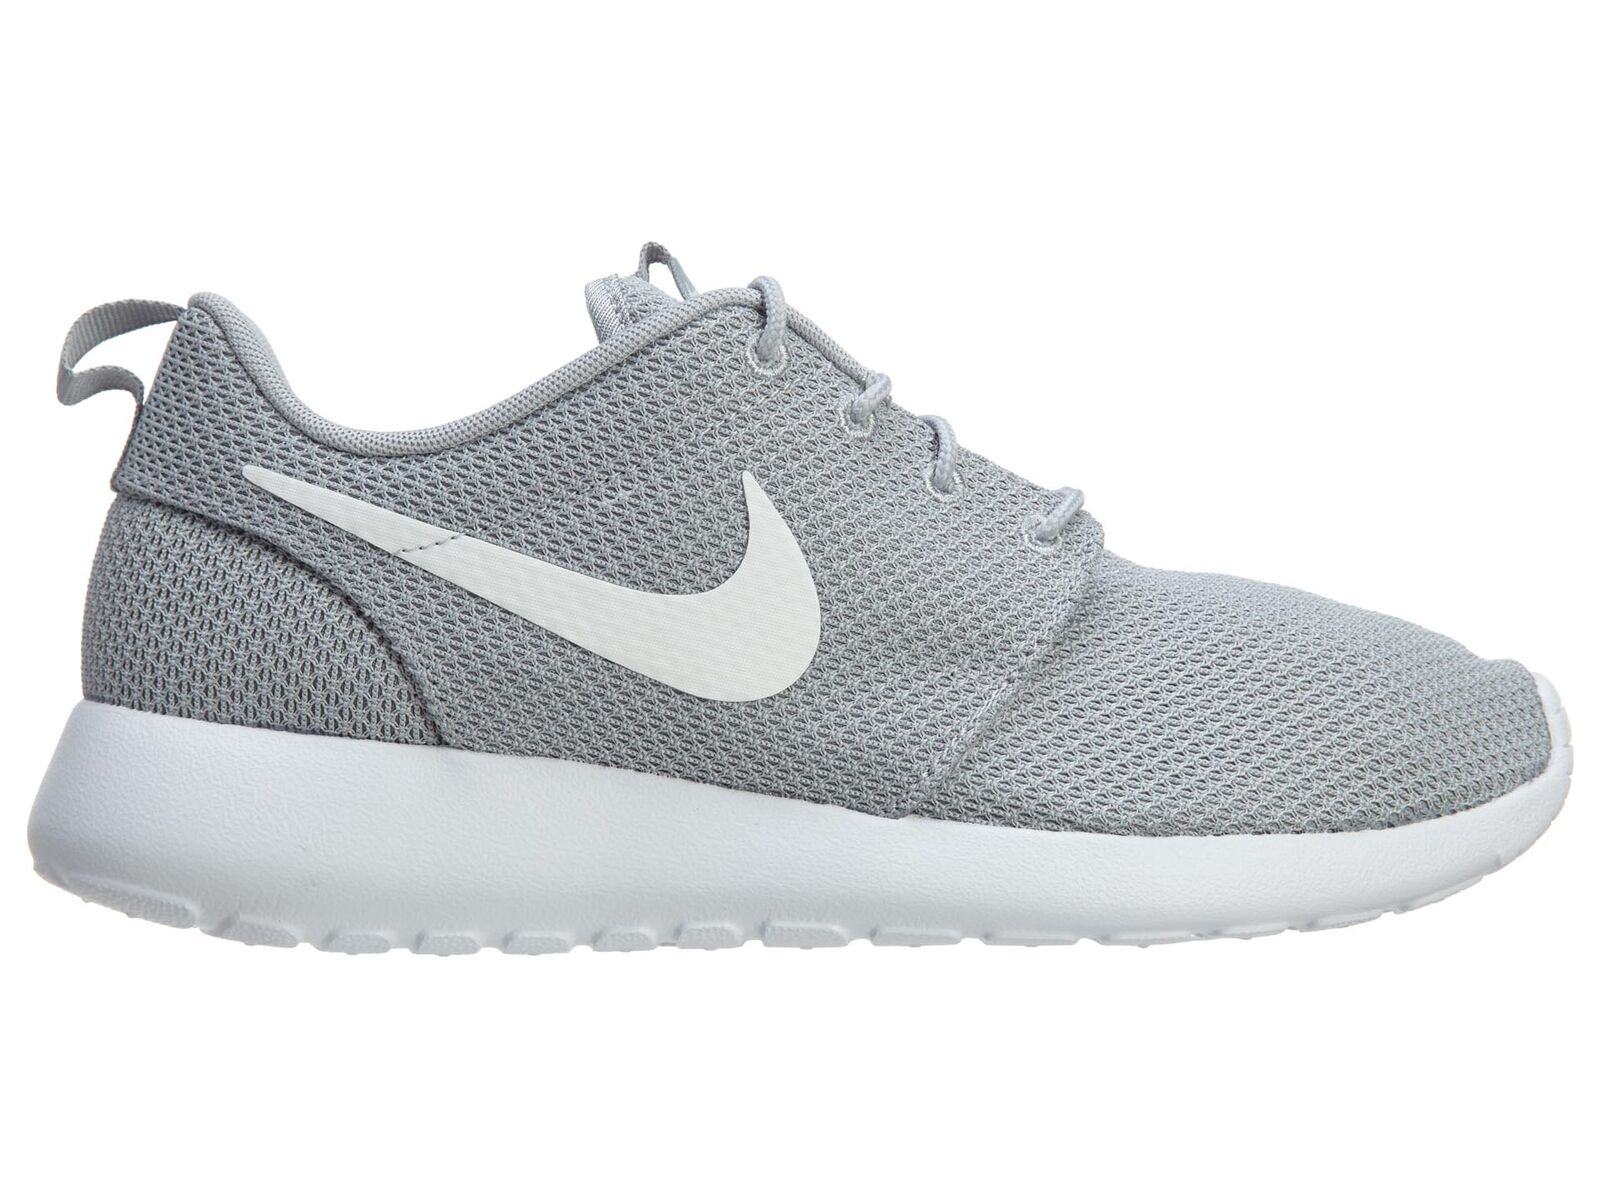 Nike Roshe One Homme 511881-023 Wolf  Gris  Blanc Mesh Running Chaussures